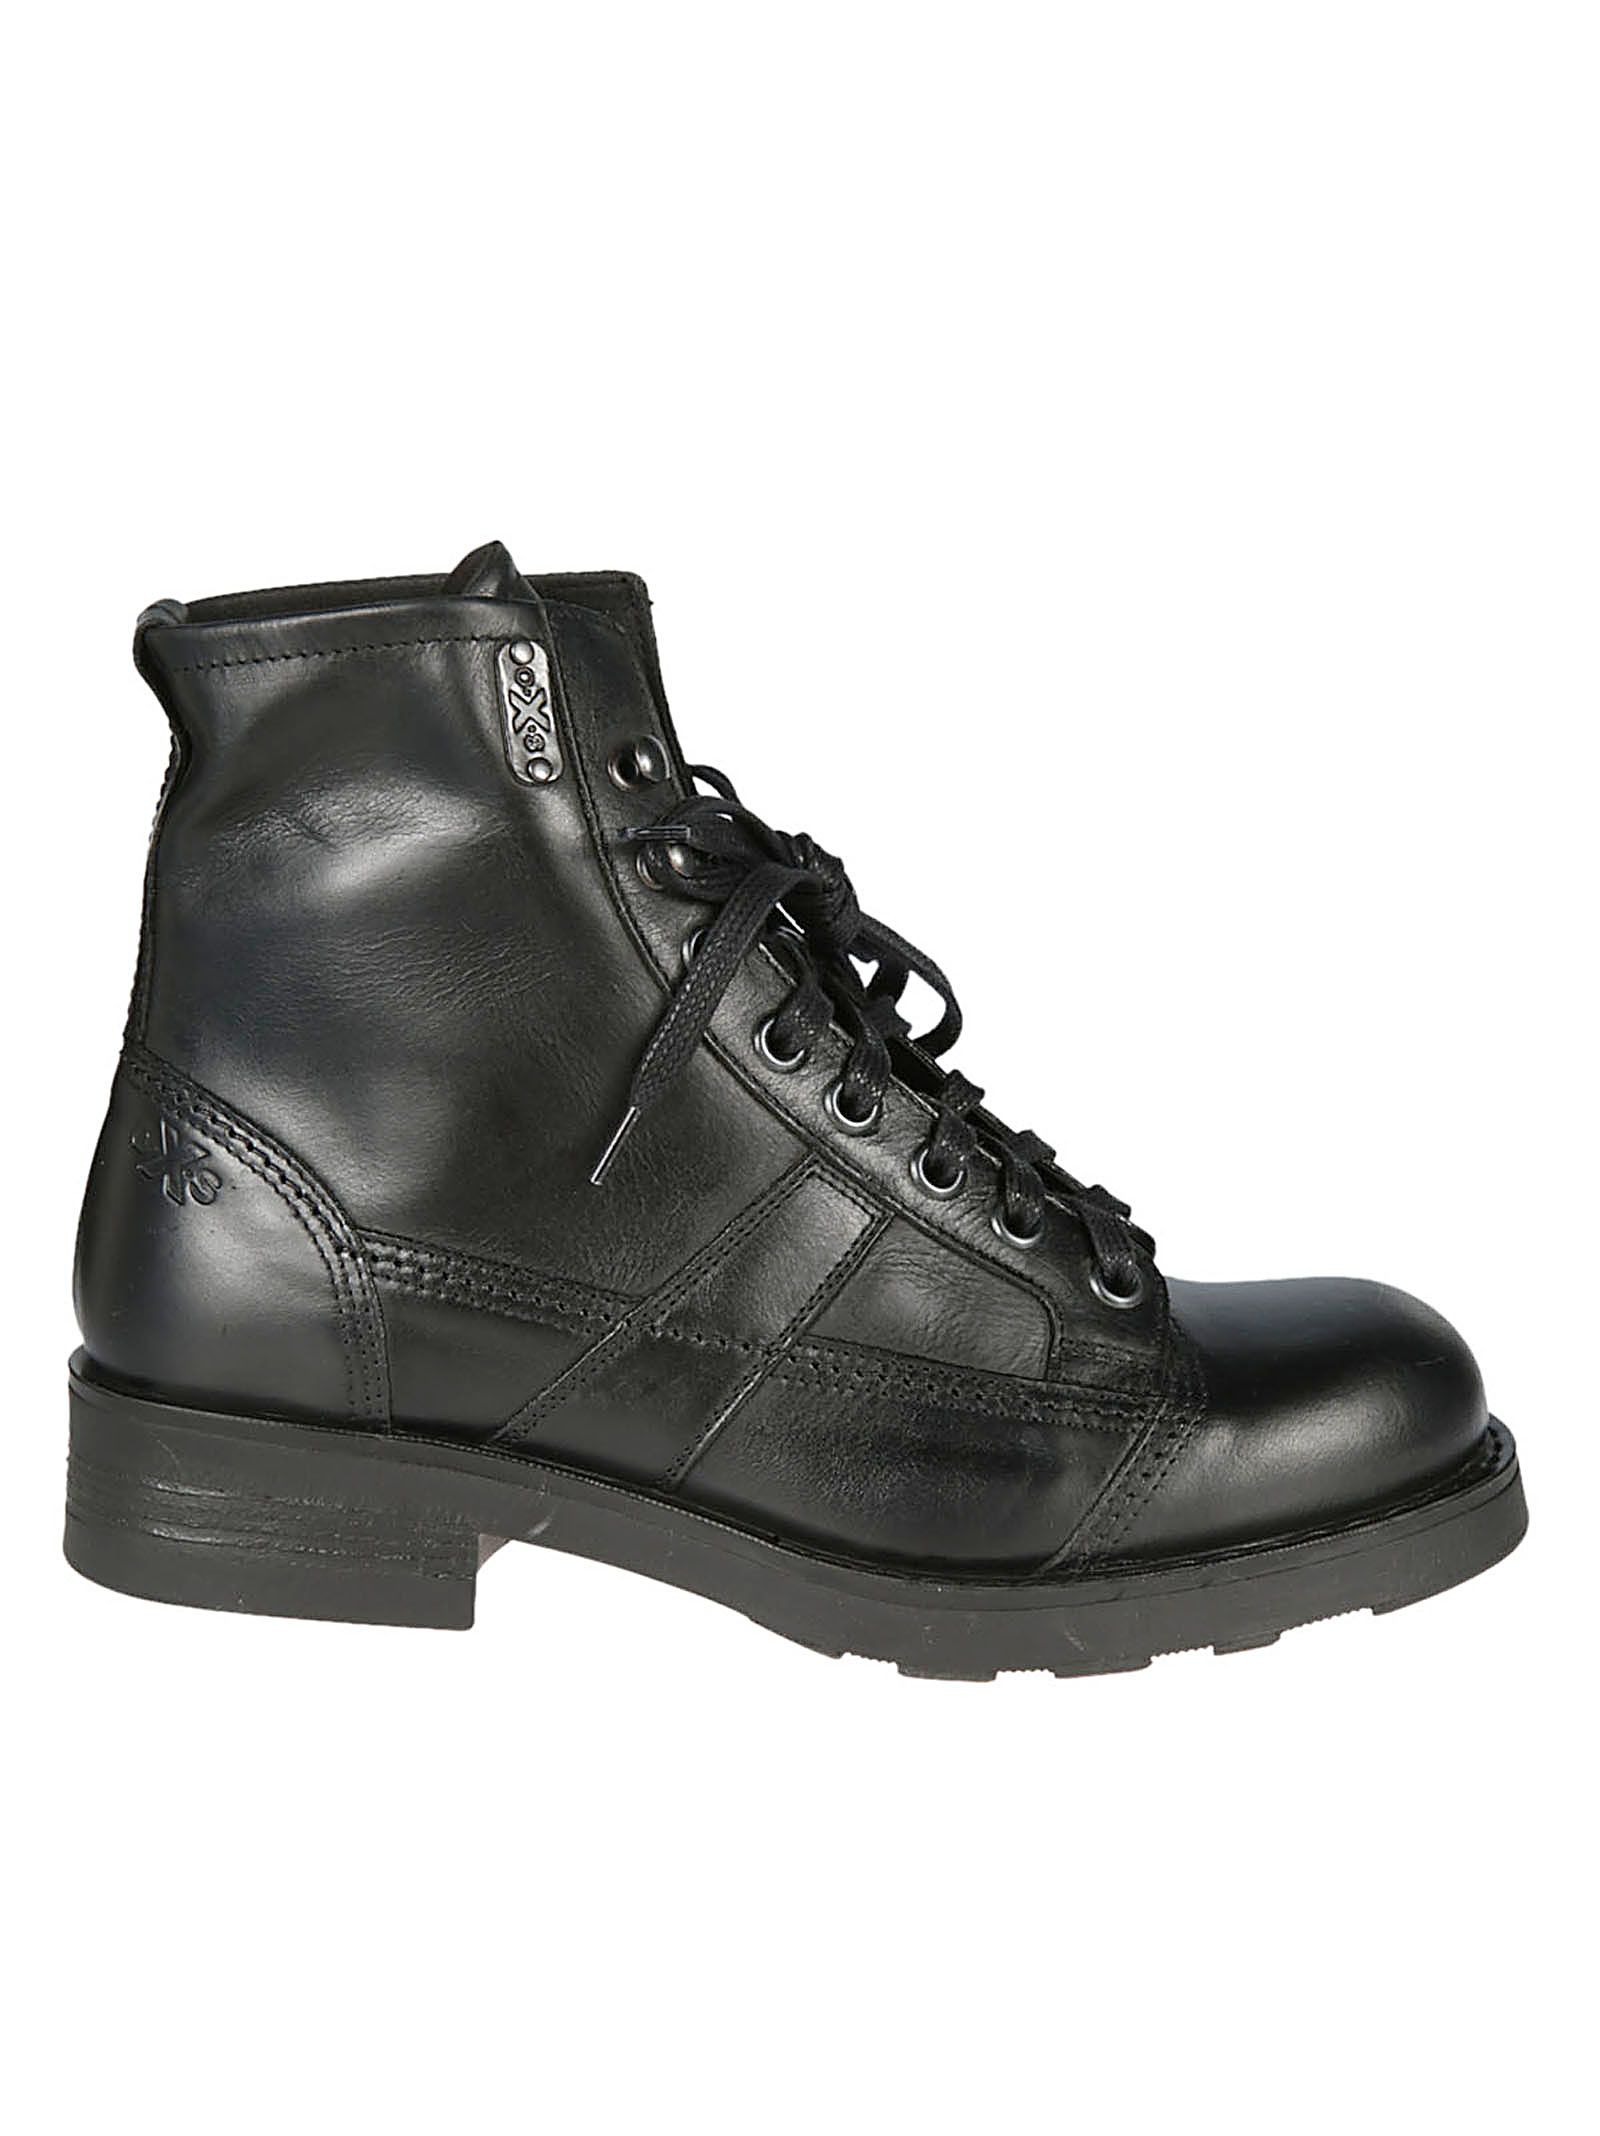 OXS Oxs John Men'S Lace-Up Boots in Nero